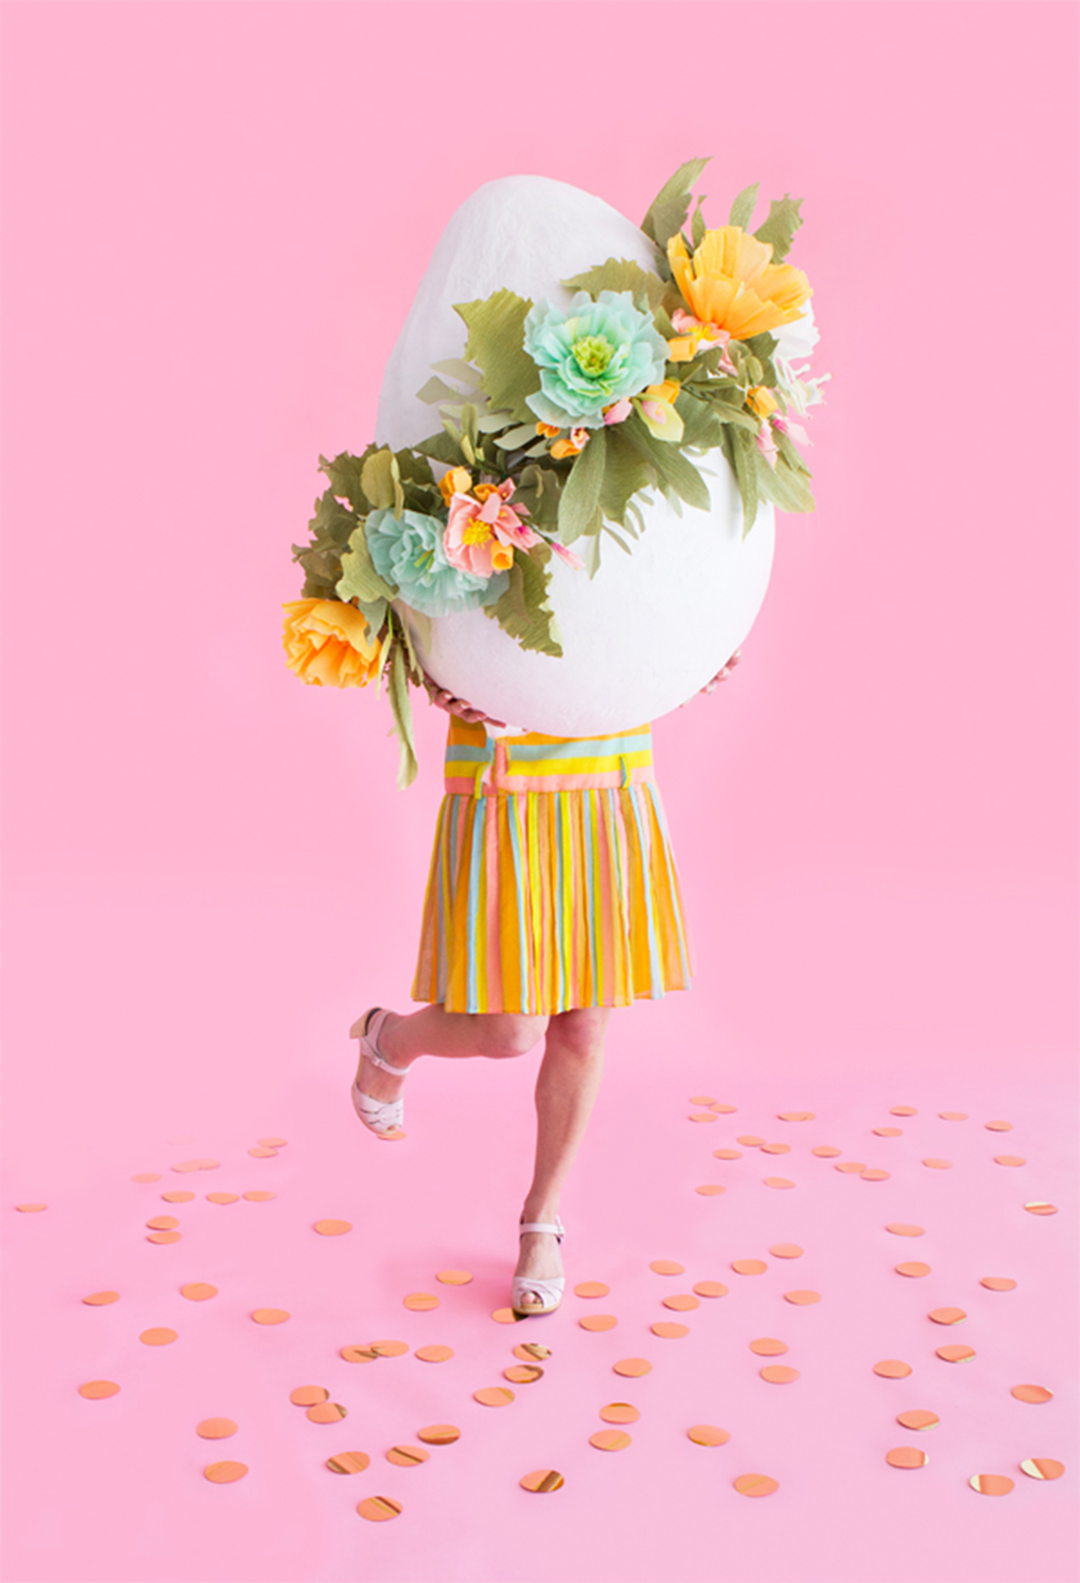 Giant floral easter egg by  Oh Happy Day .